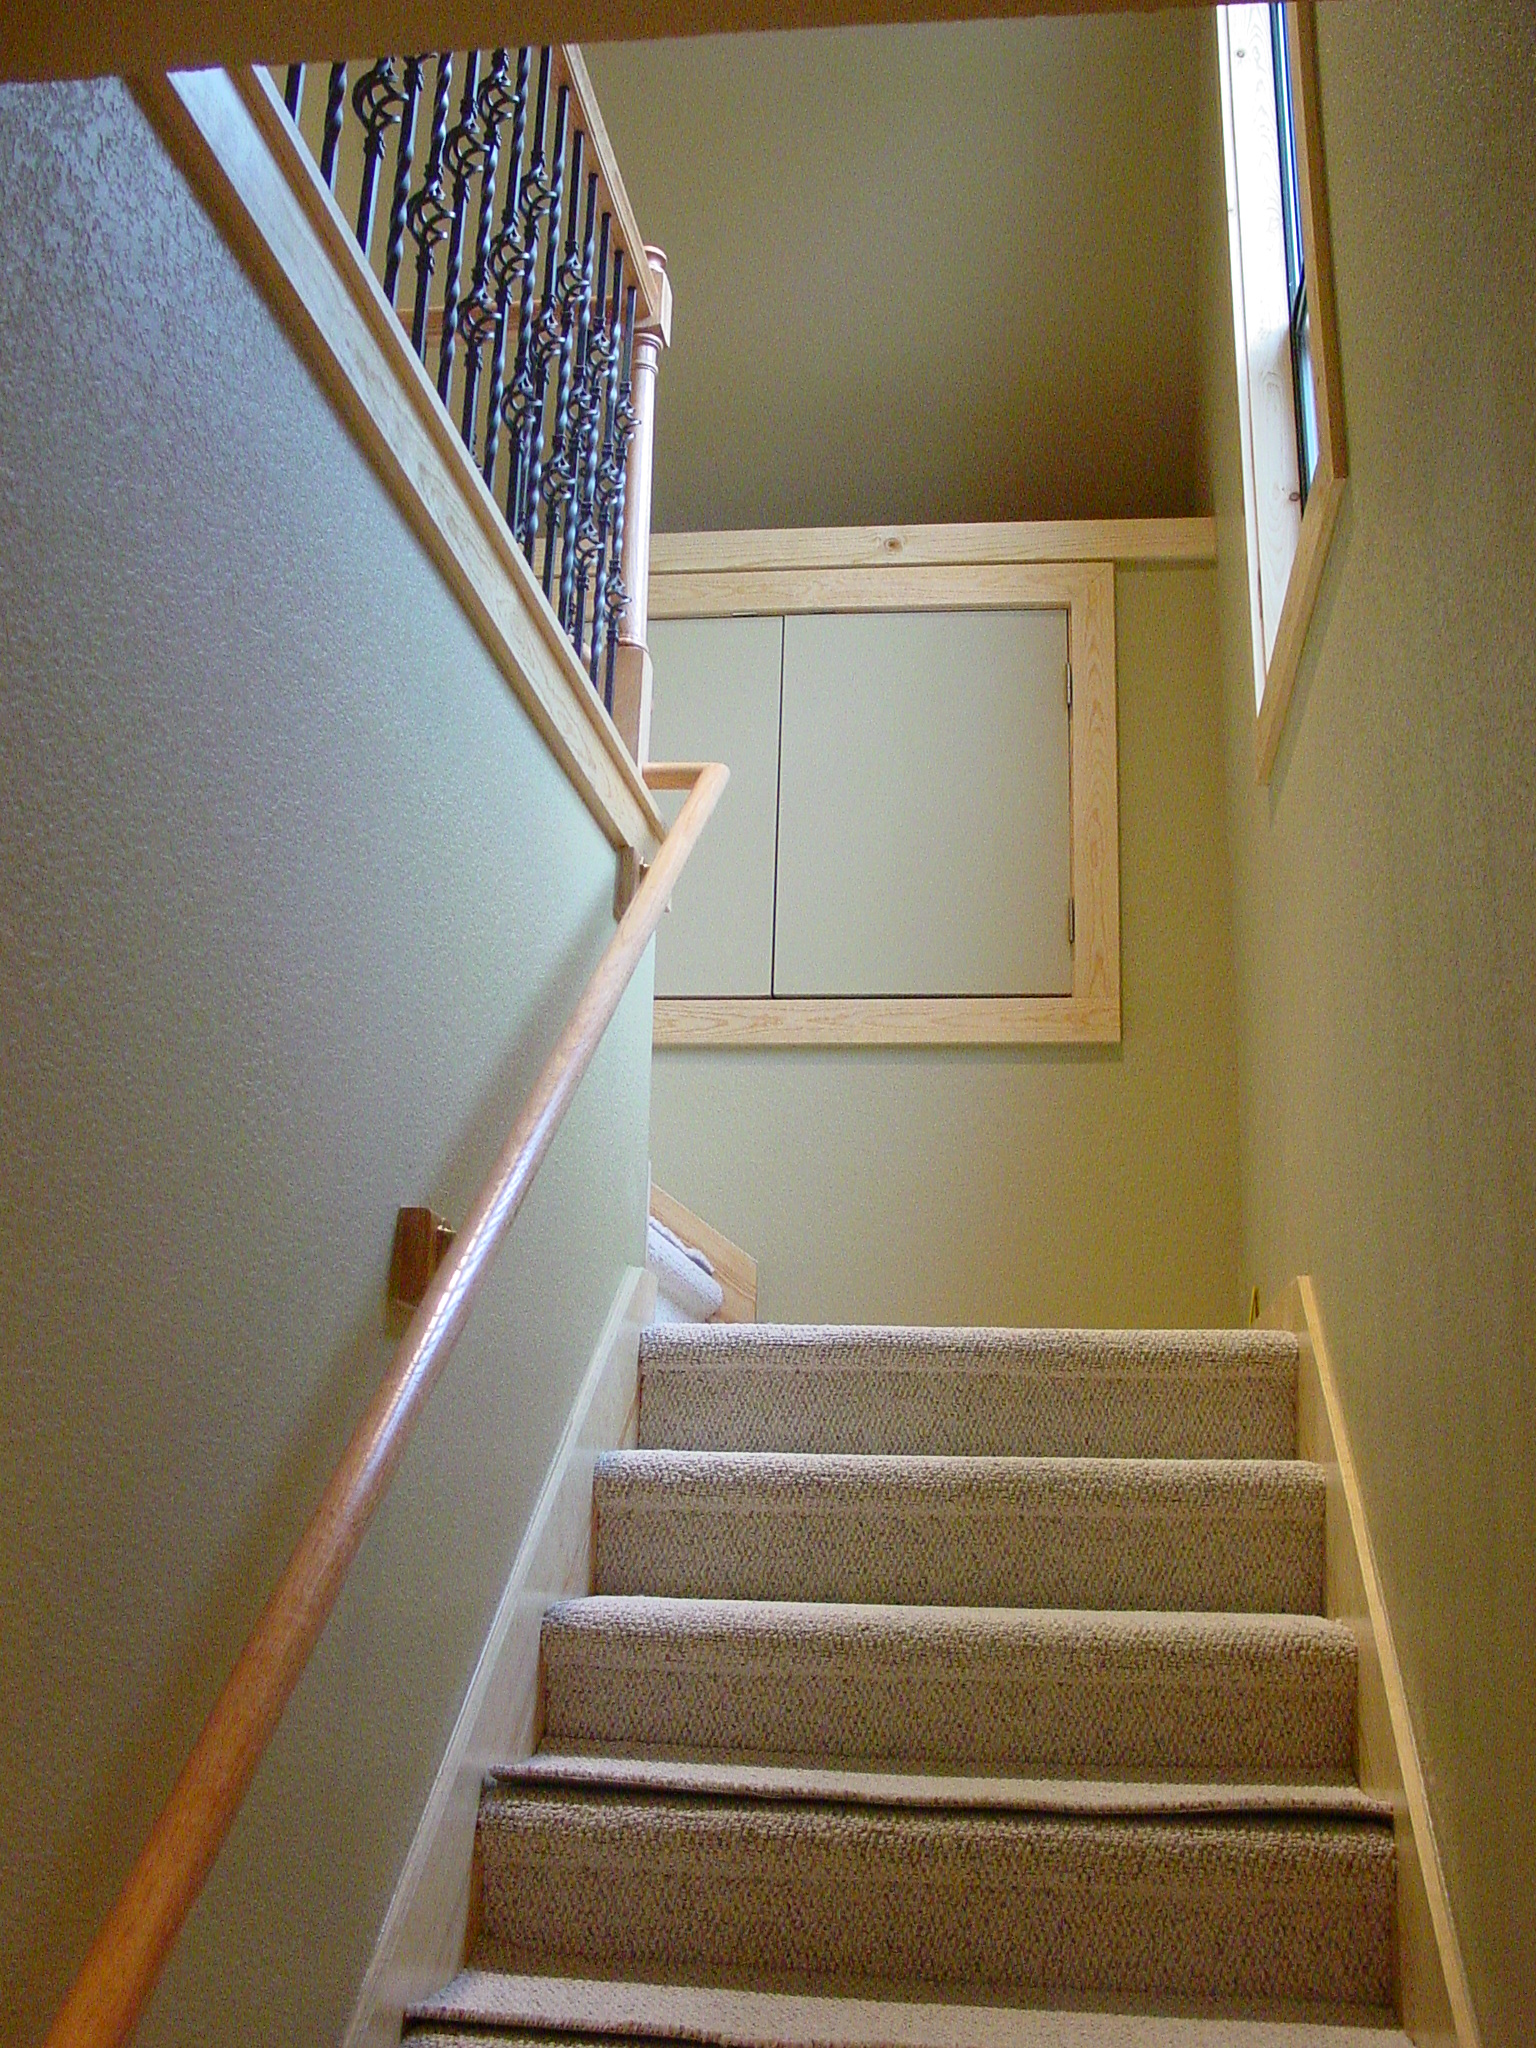 4802 WB - Interior, Complete,stairs.jpg